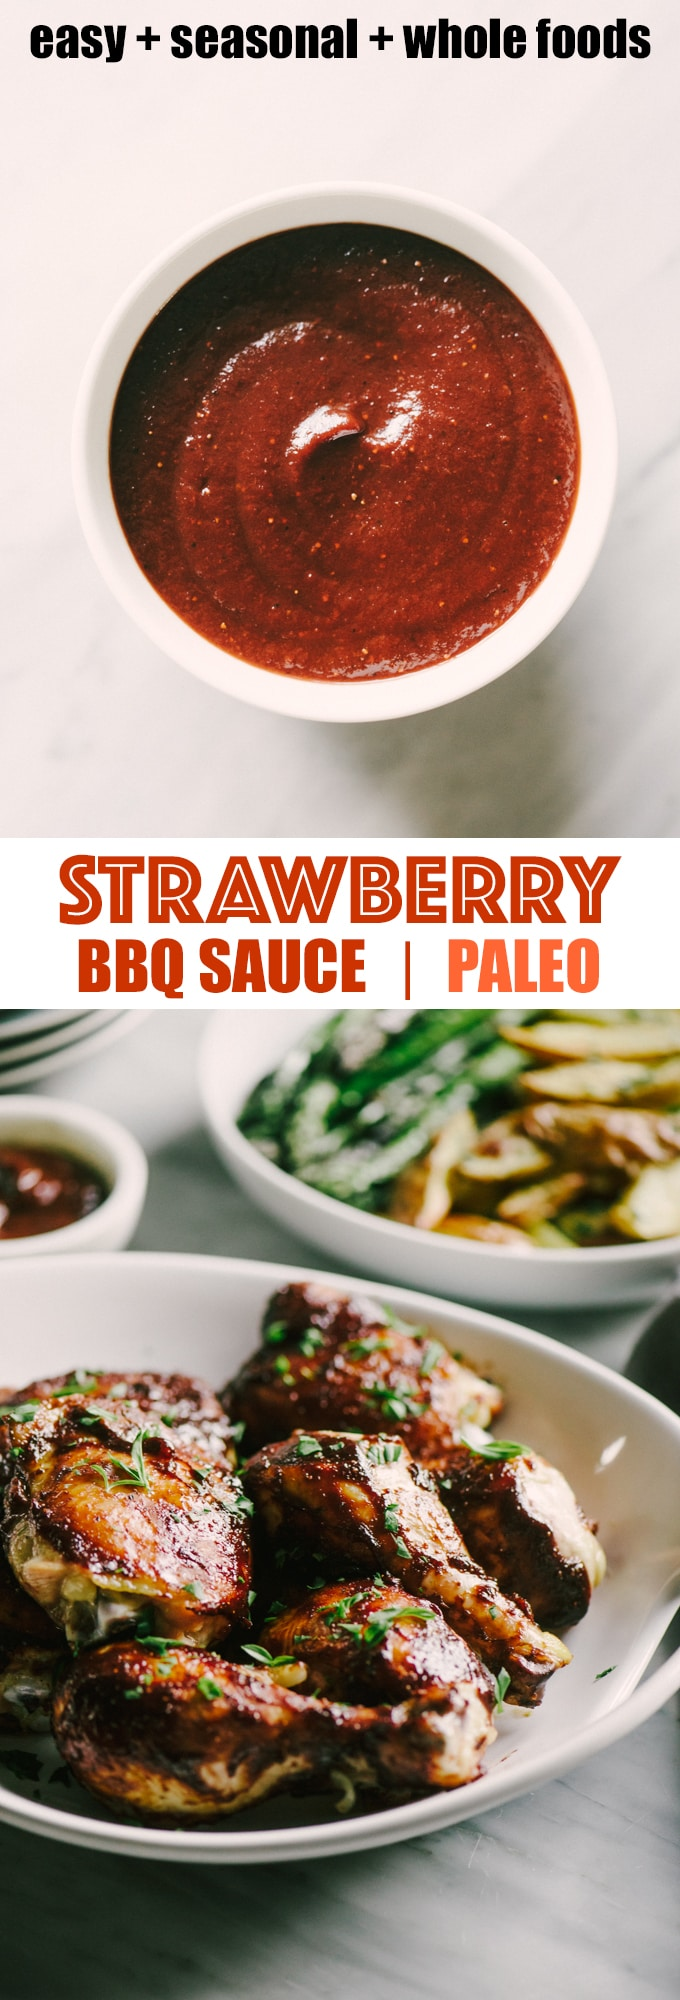 This paleo strawberry BBQ sauce is sweet and tangy, and a perfect companion to juicy grilled bone-in pastured chicken. Be sure to make an extra batch of this paleo BBQ sauce to tuck into the freezer for a fast, easy, weeknight dinner. #healthy #wholefood #realfood #eatclean #paleo